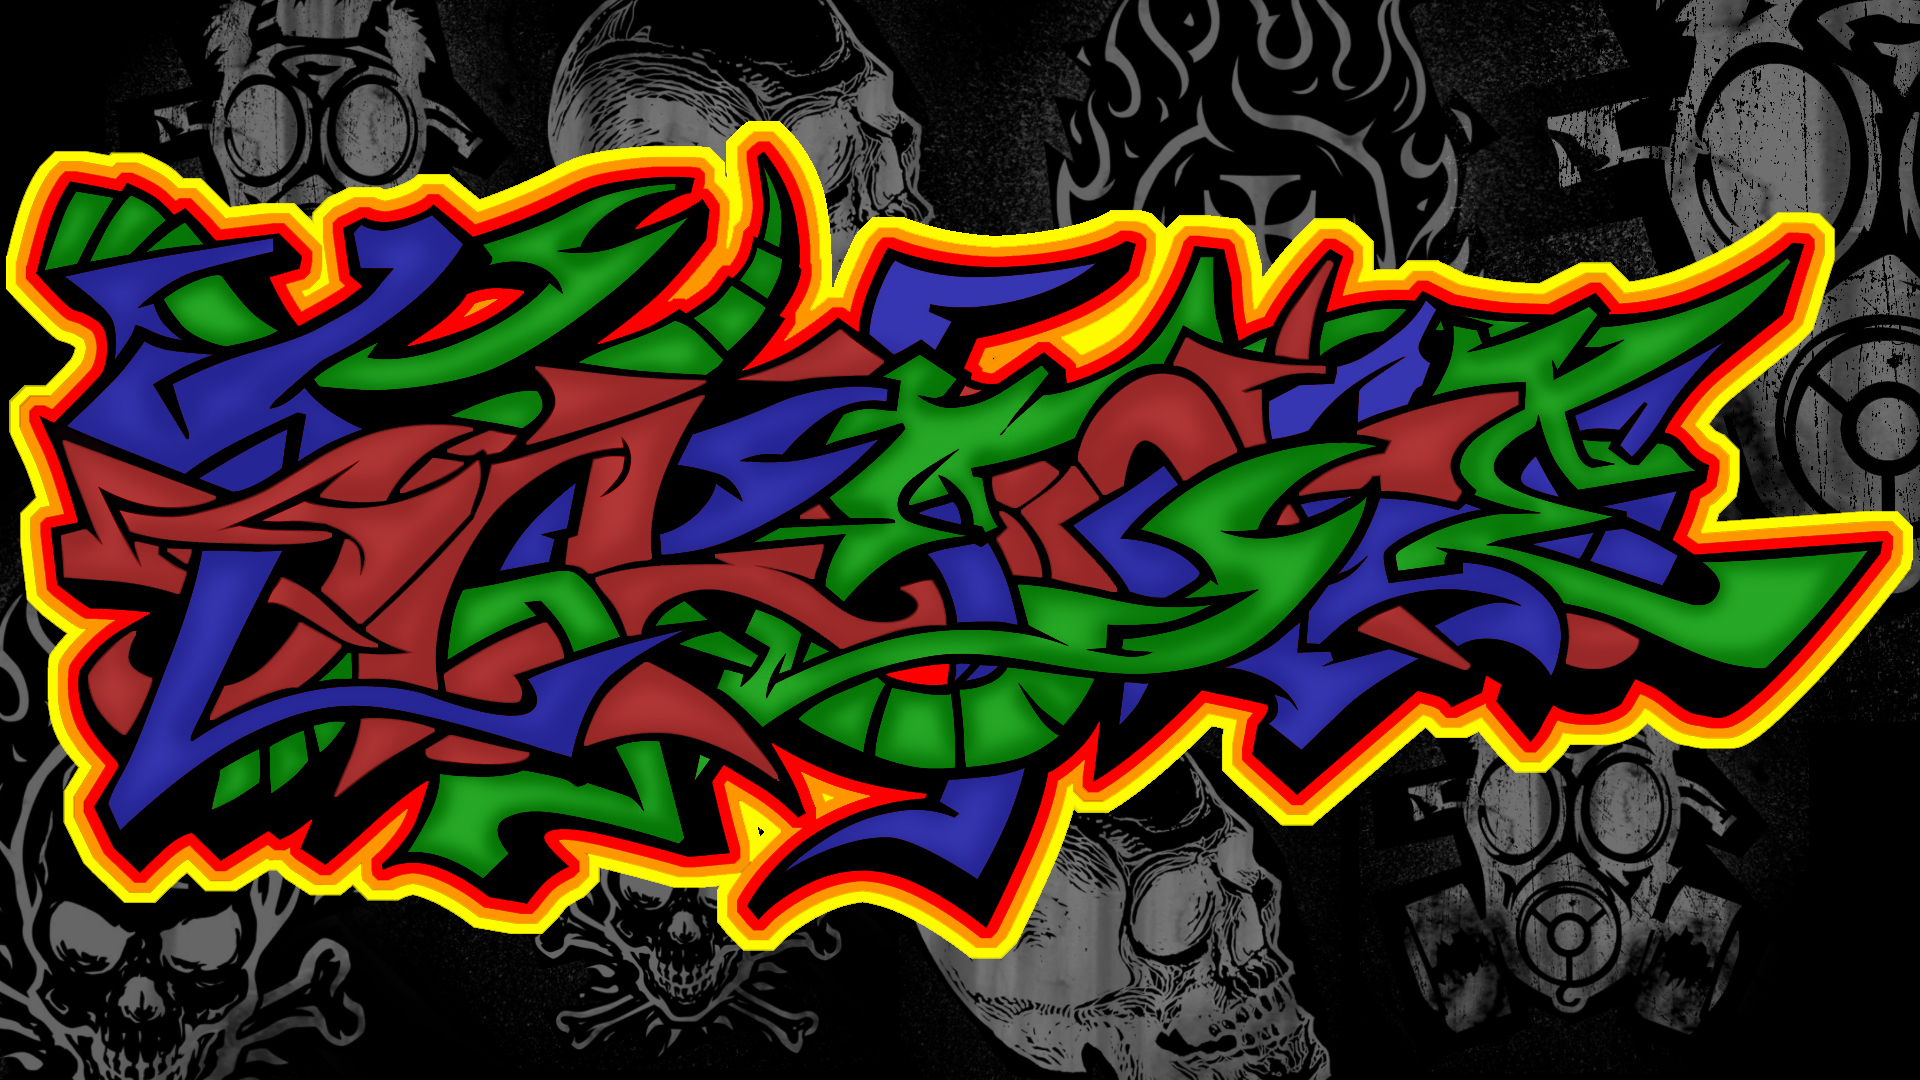 ... graffiti wallpaper 10 ...